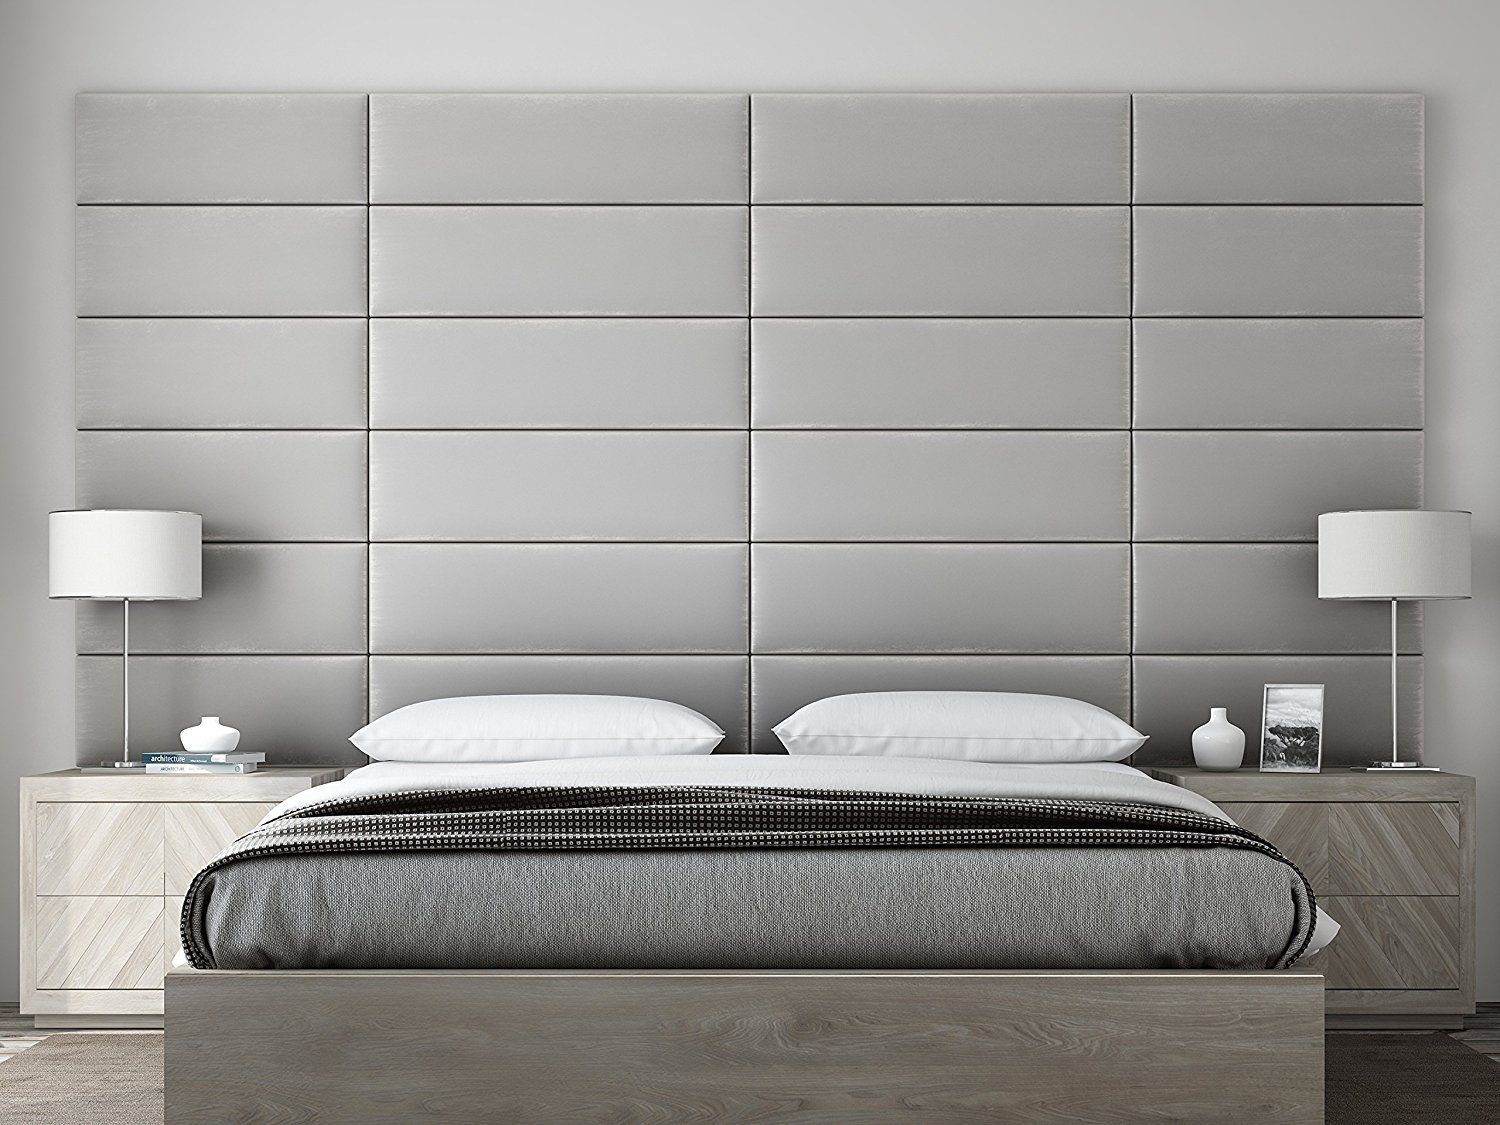 Amazon Com Vant Upholstered Headboards Accent Wall Panels Packs Of 4 Textured Cotton Weave Ash Gray Upholstered Wall Panels Upholstered Walls Headboard